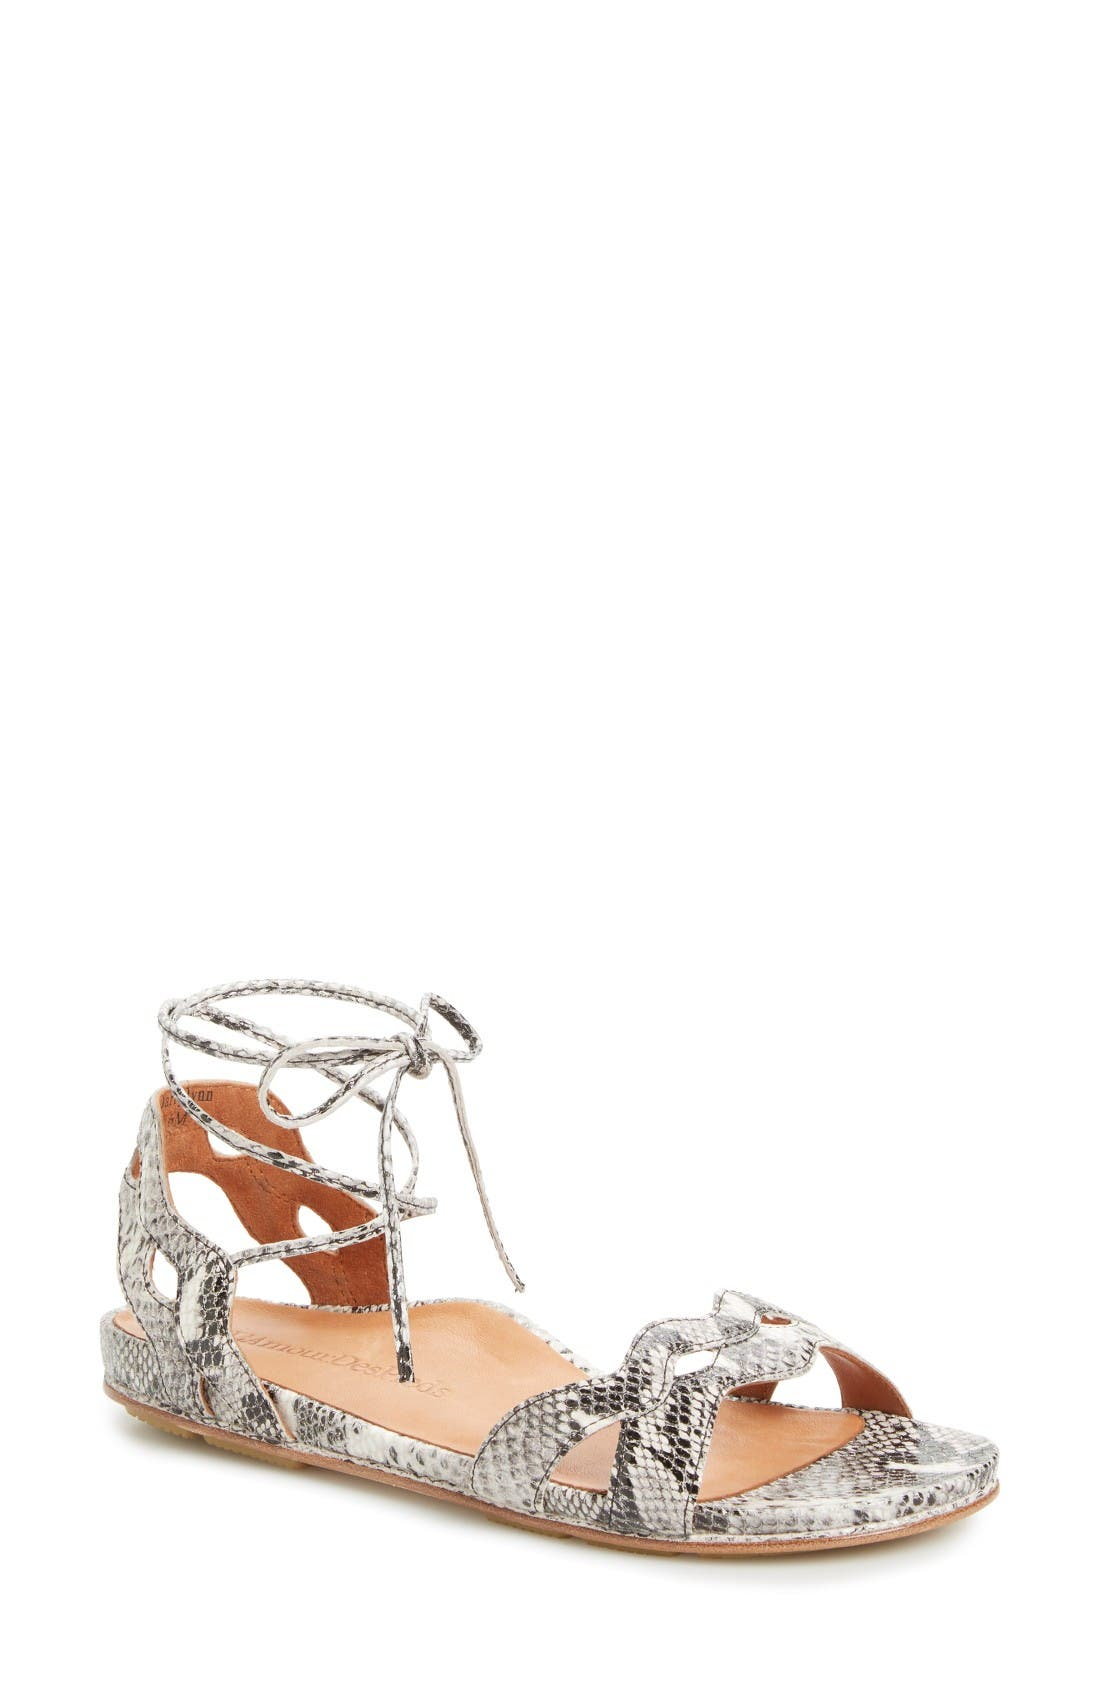 Alternate Image 1 Selected - L'Amour des Pieds Darrylynn Wraparound Lace-Up Sandal (Women)